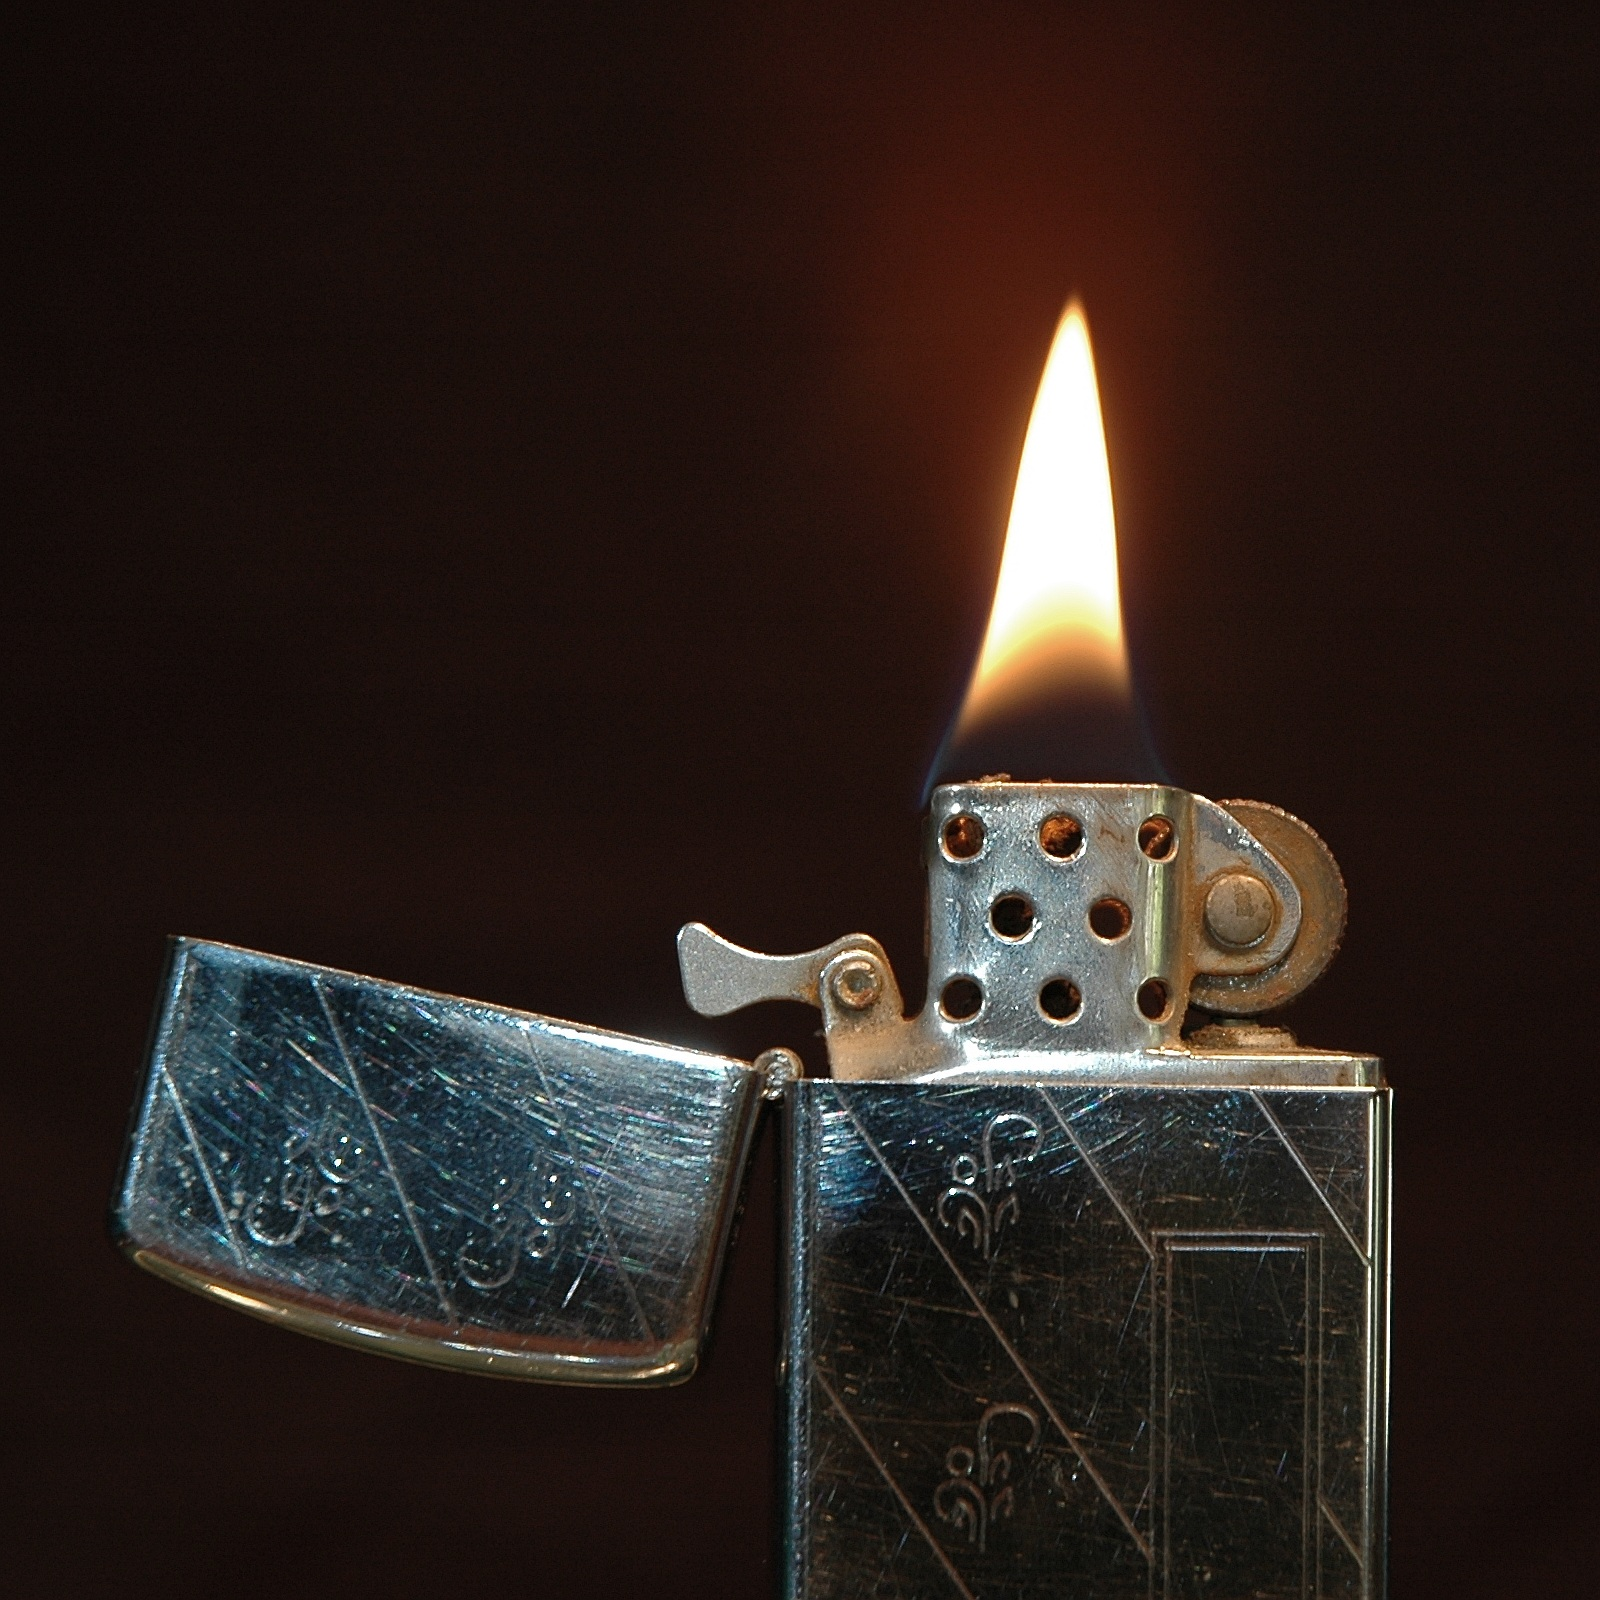 FileZippo Slim 1968 Lit